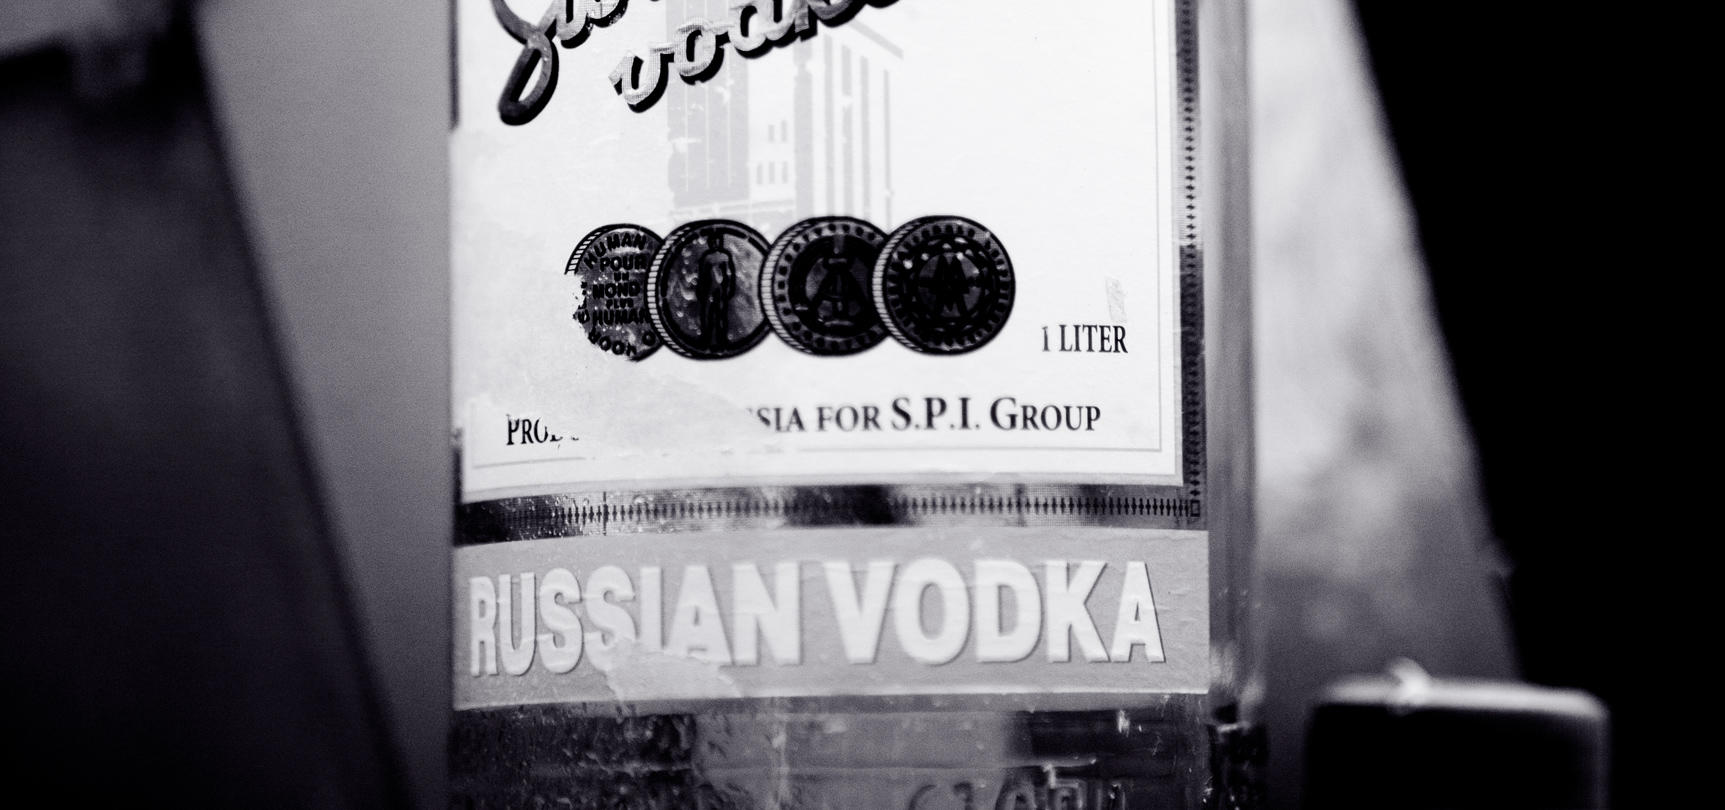 How to Engage With Millennials? Stoli Vodka Puts Stock in Authenticity